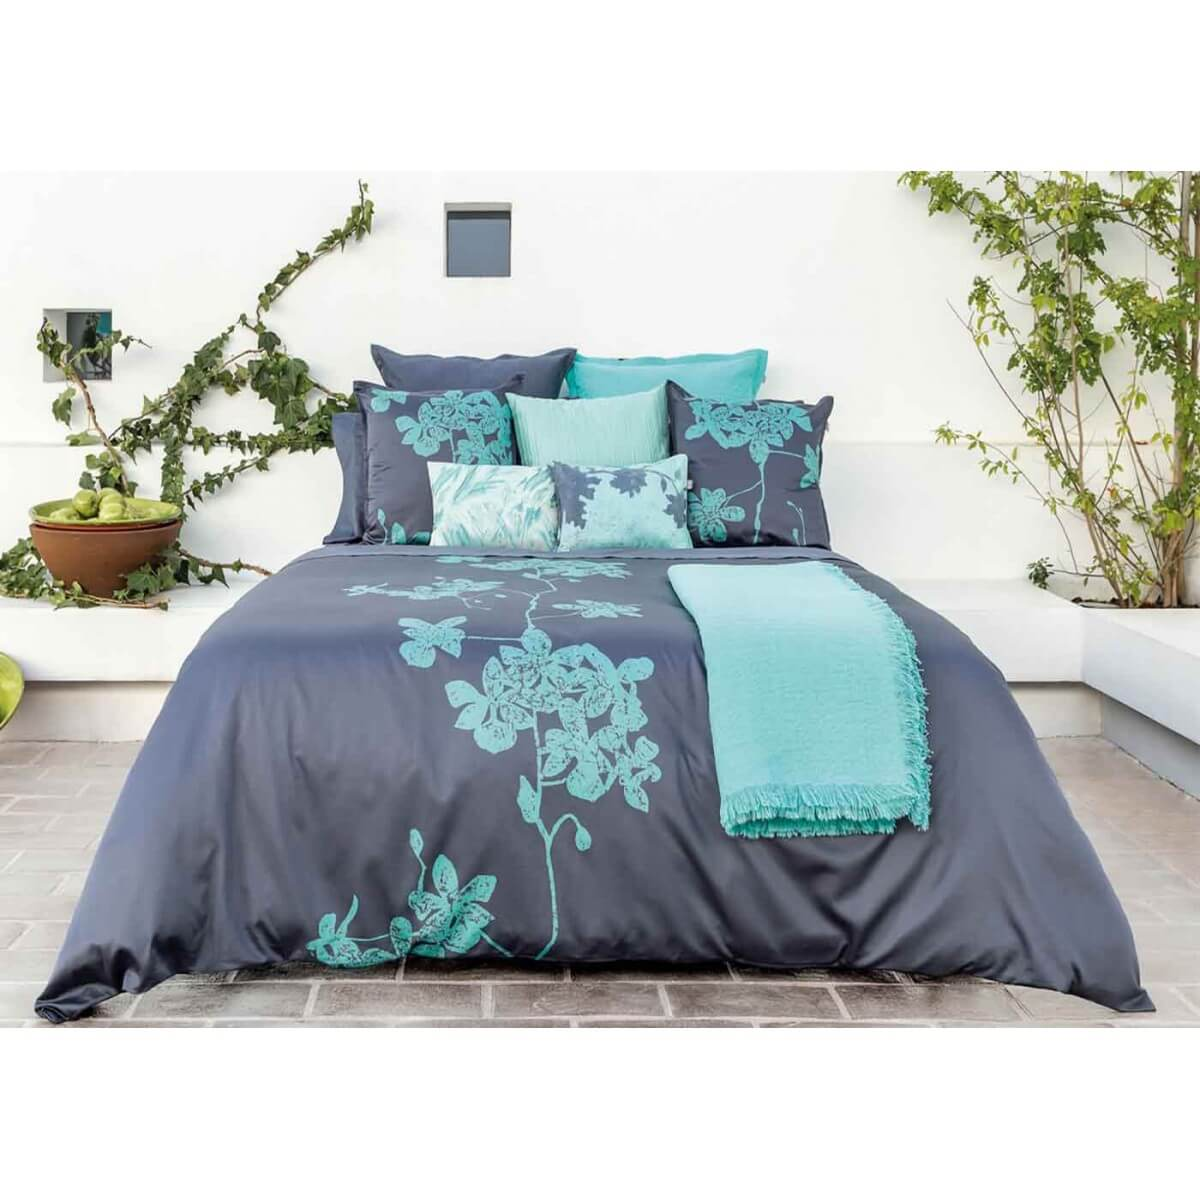 housse de couette mint et bleu batik chic par home concept. Black Bedroom Furniture Sets. Home Design Ideas